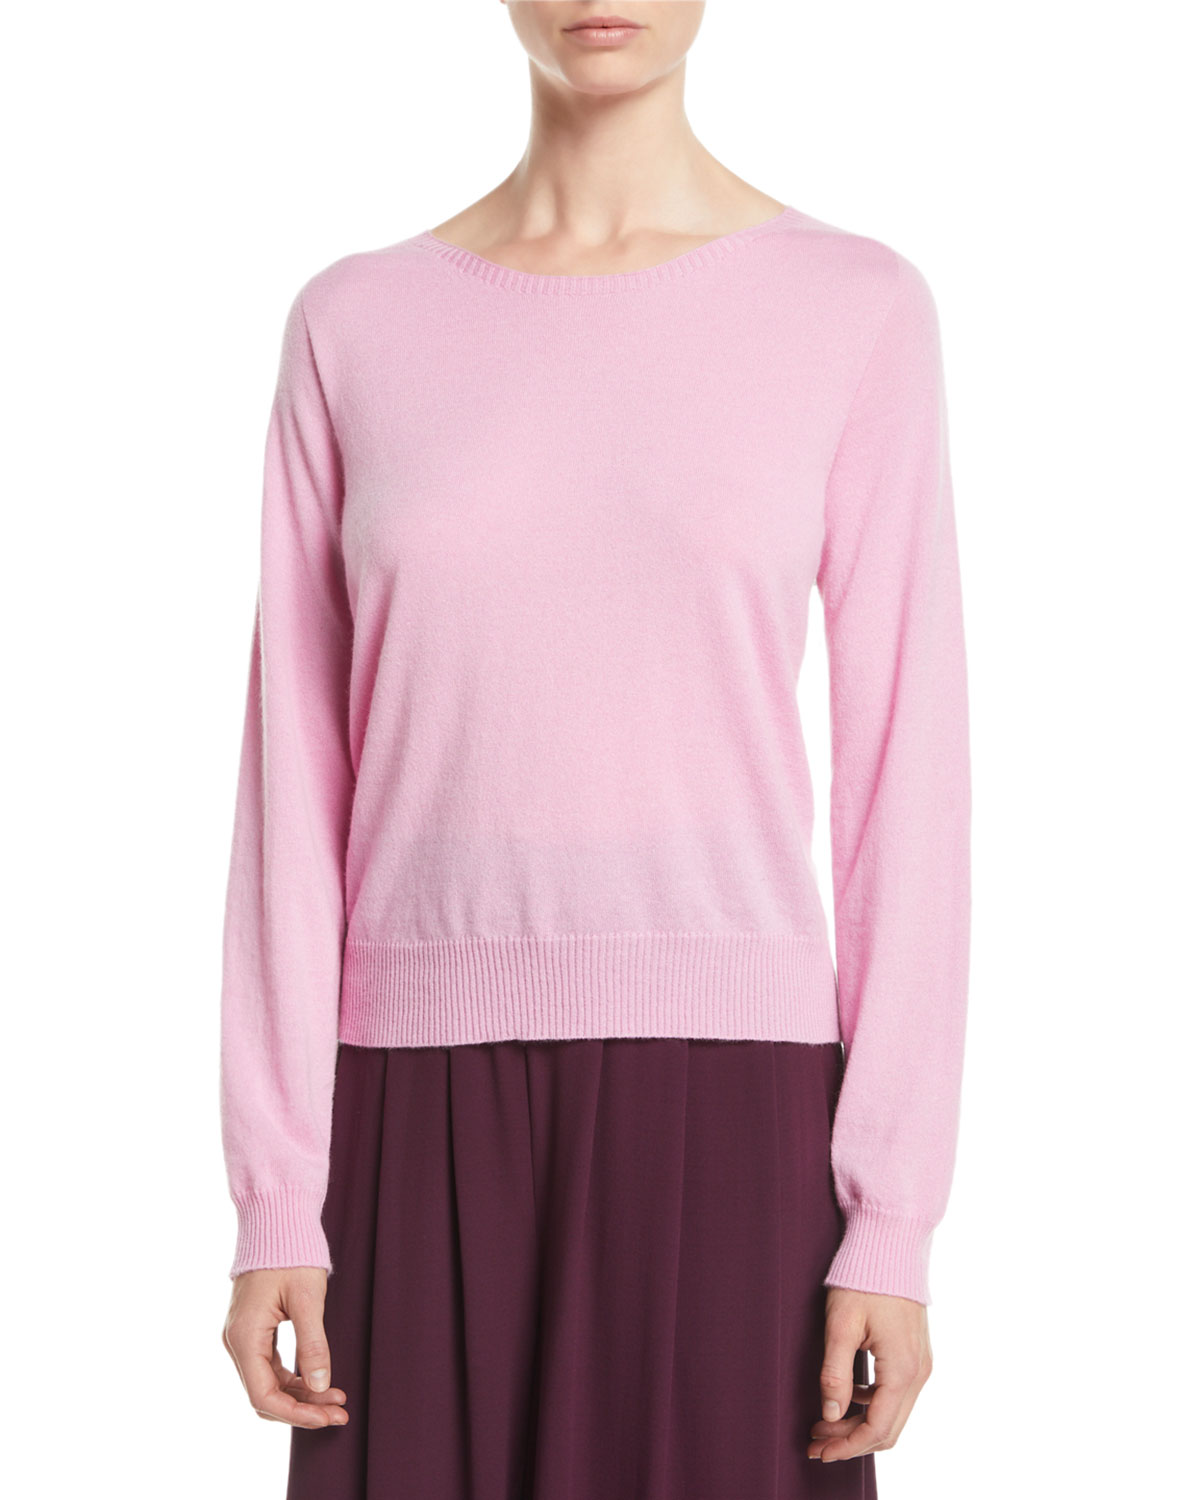 2219c83fb0a Eileen Fisher Italian Cashmere Boat-Neck Sweater